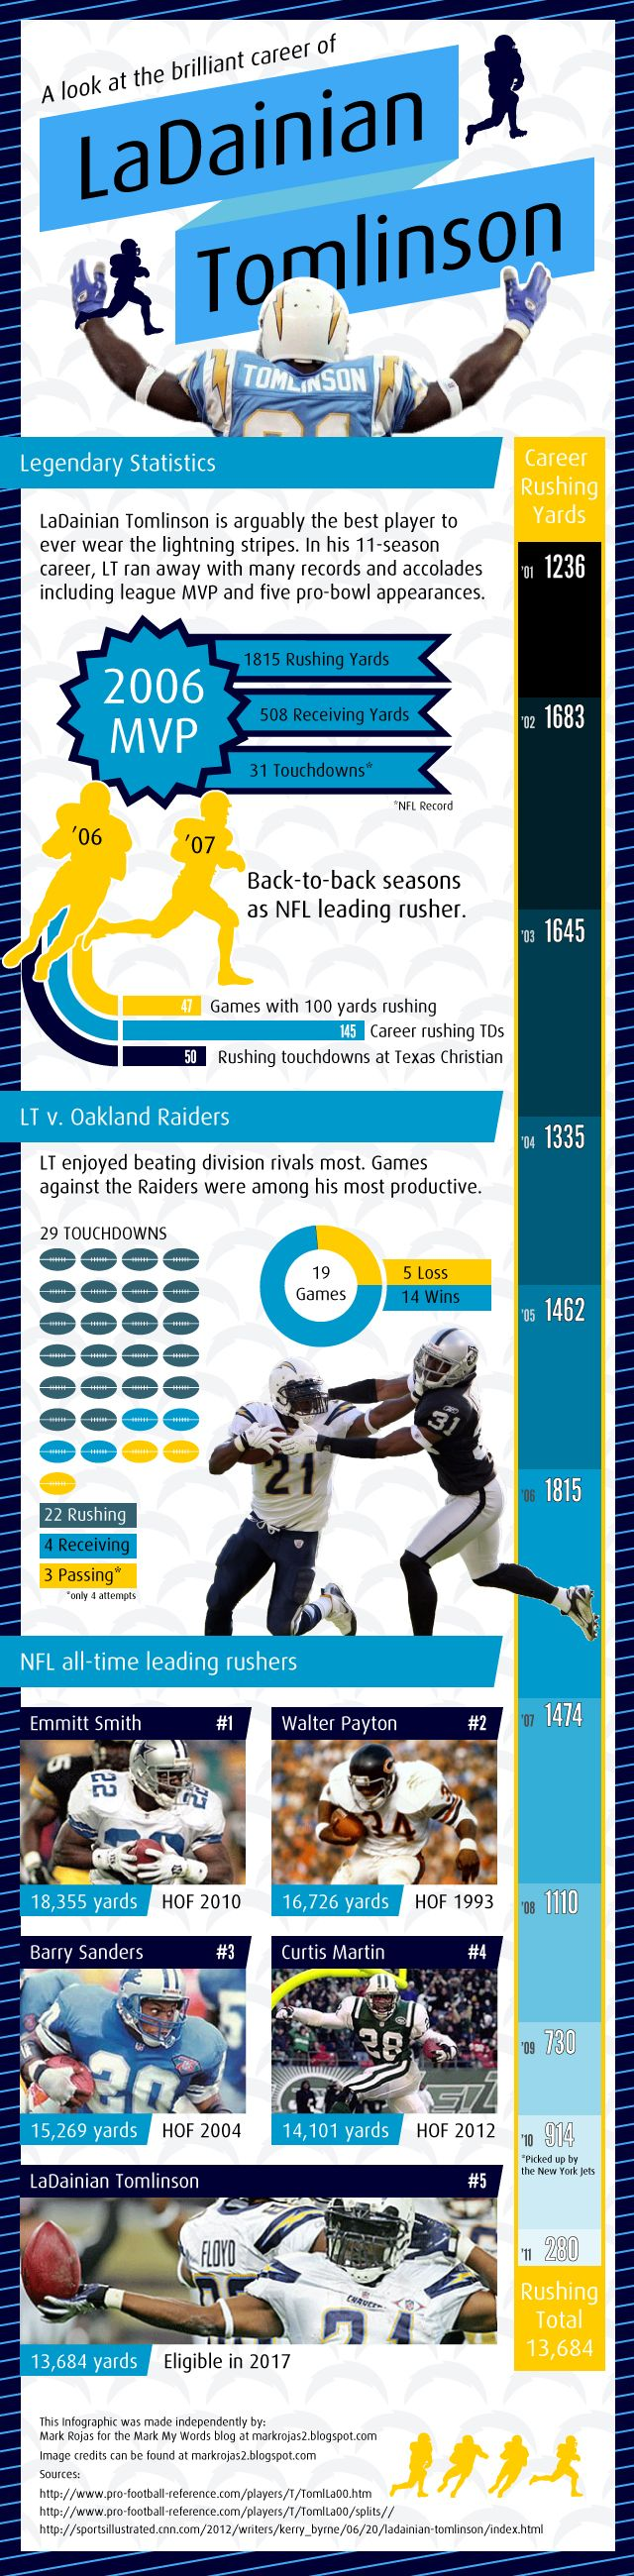 Infographic about the career of future Hall of Famer LaDanian Tomlinson of the San Diego Chargers